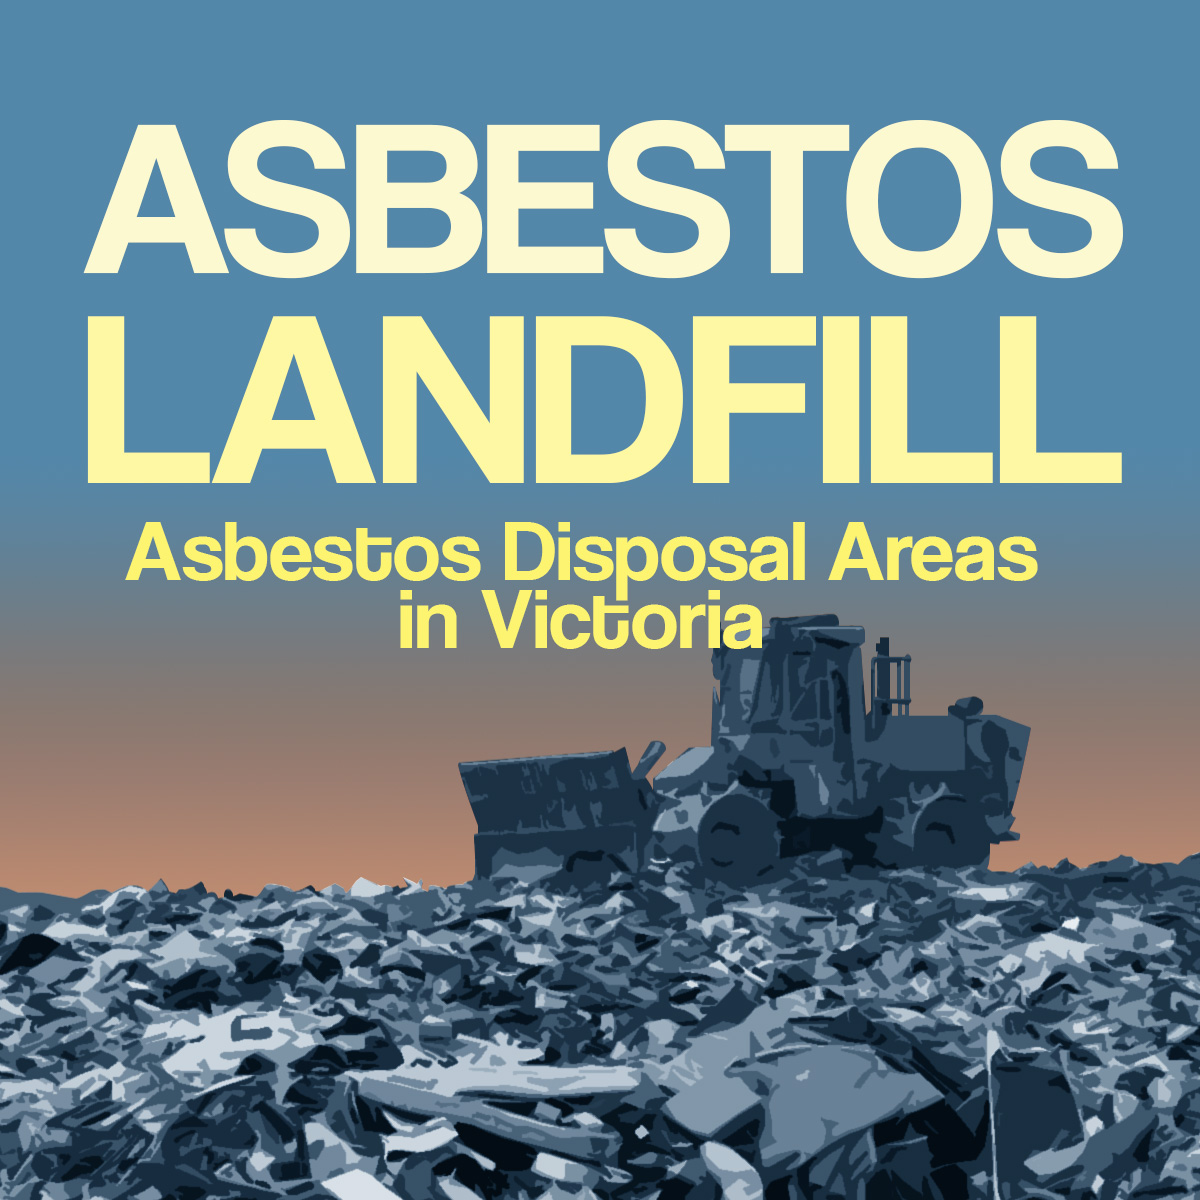 Asbestos-Landfill-Asbestos-Disposal-Areas-in-Victoria-infographic-plaza-thumb